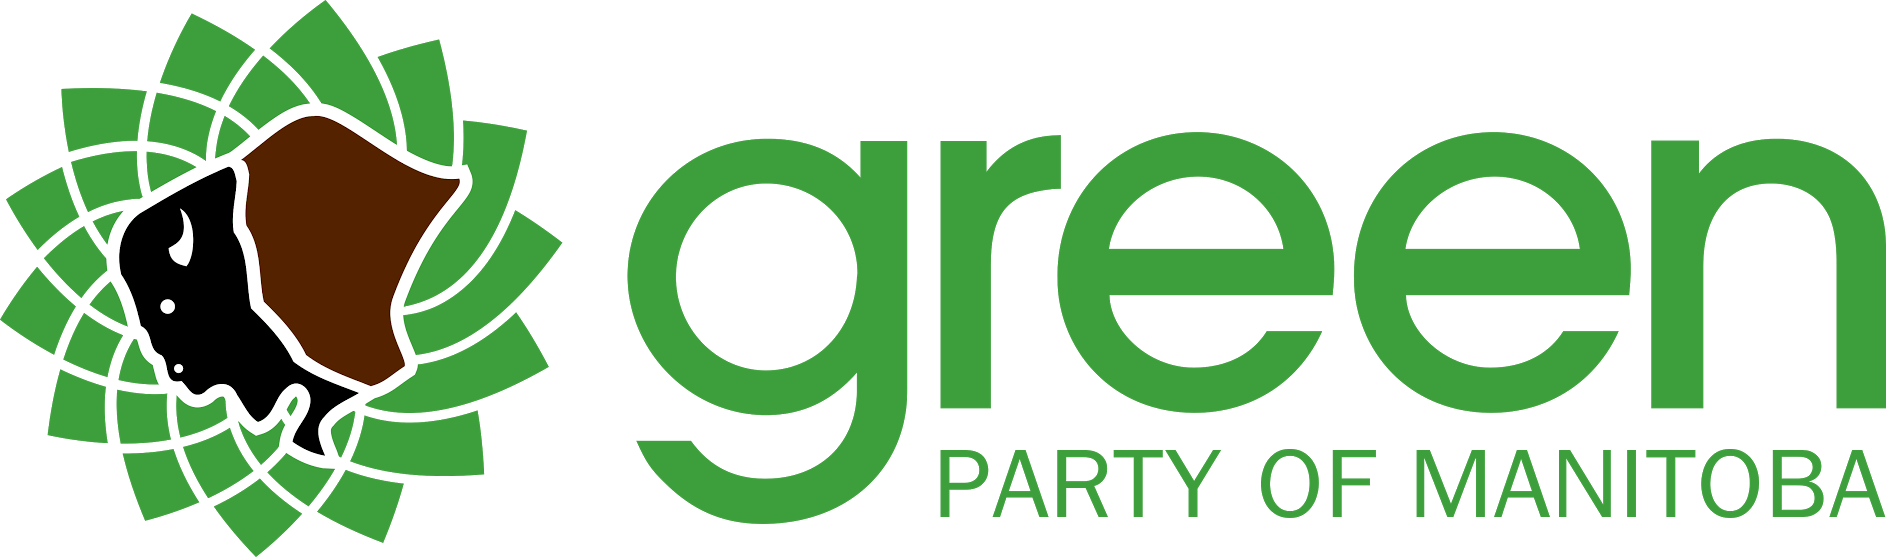 Green party logo png. Gpm of manitoba